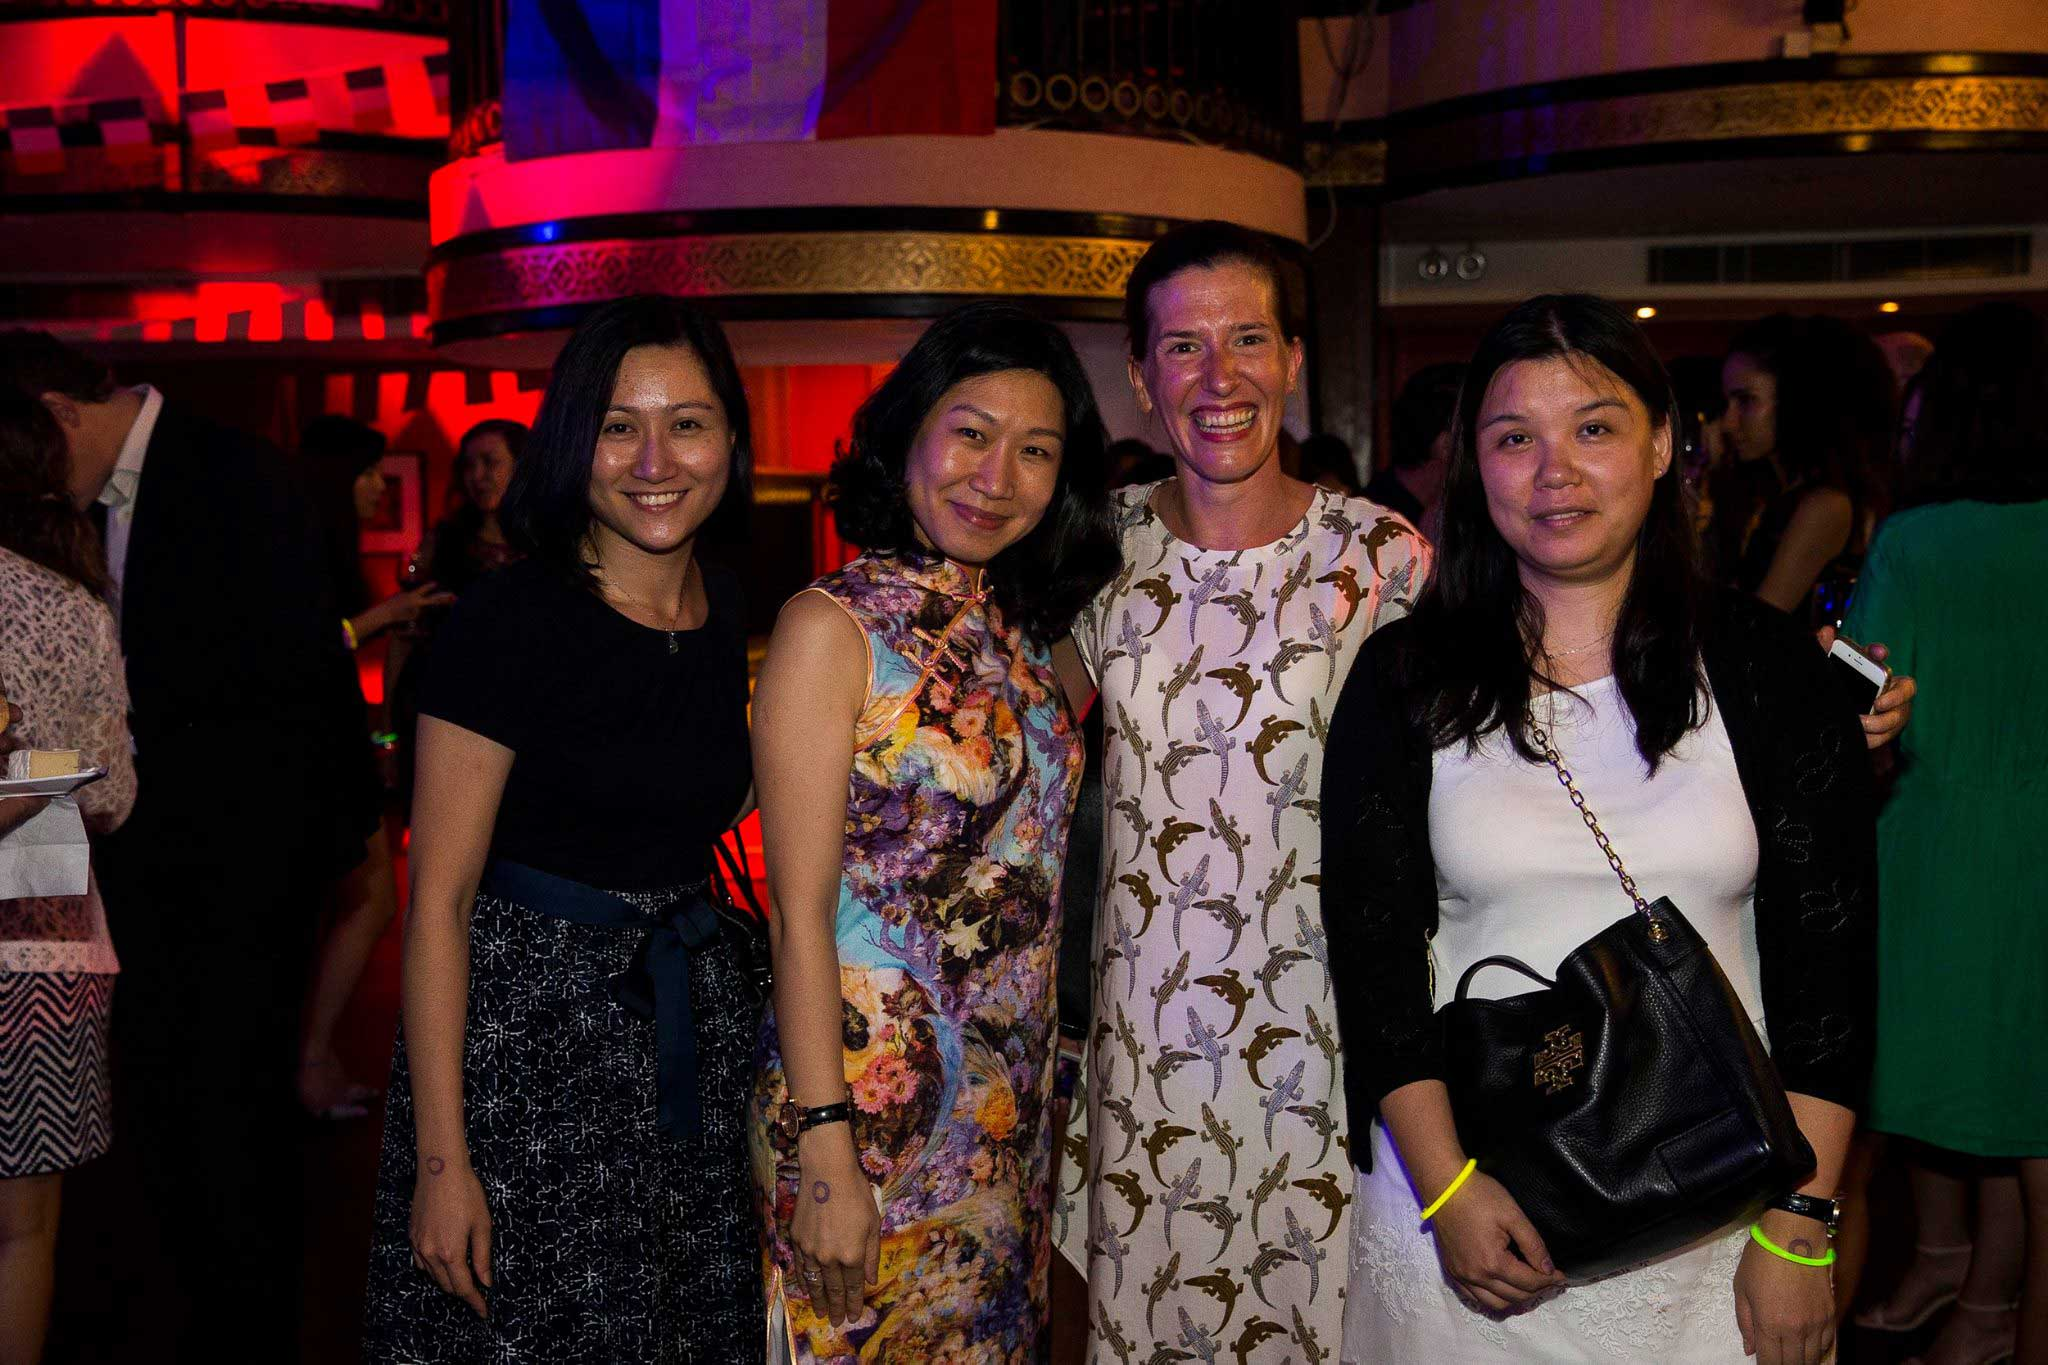 FCCIHK celebrate French National Day